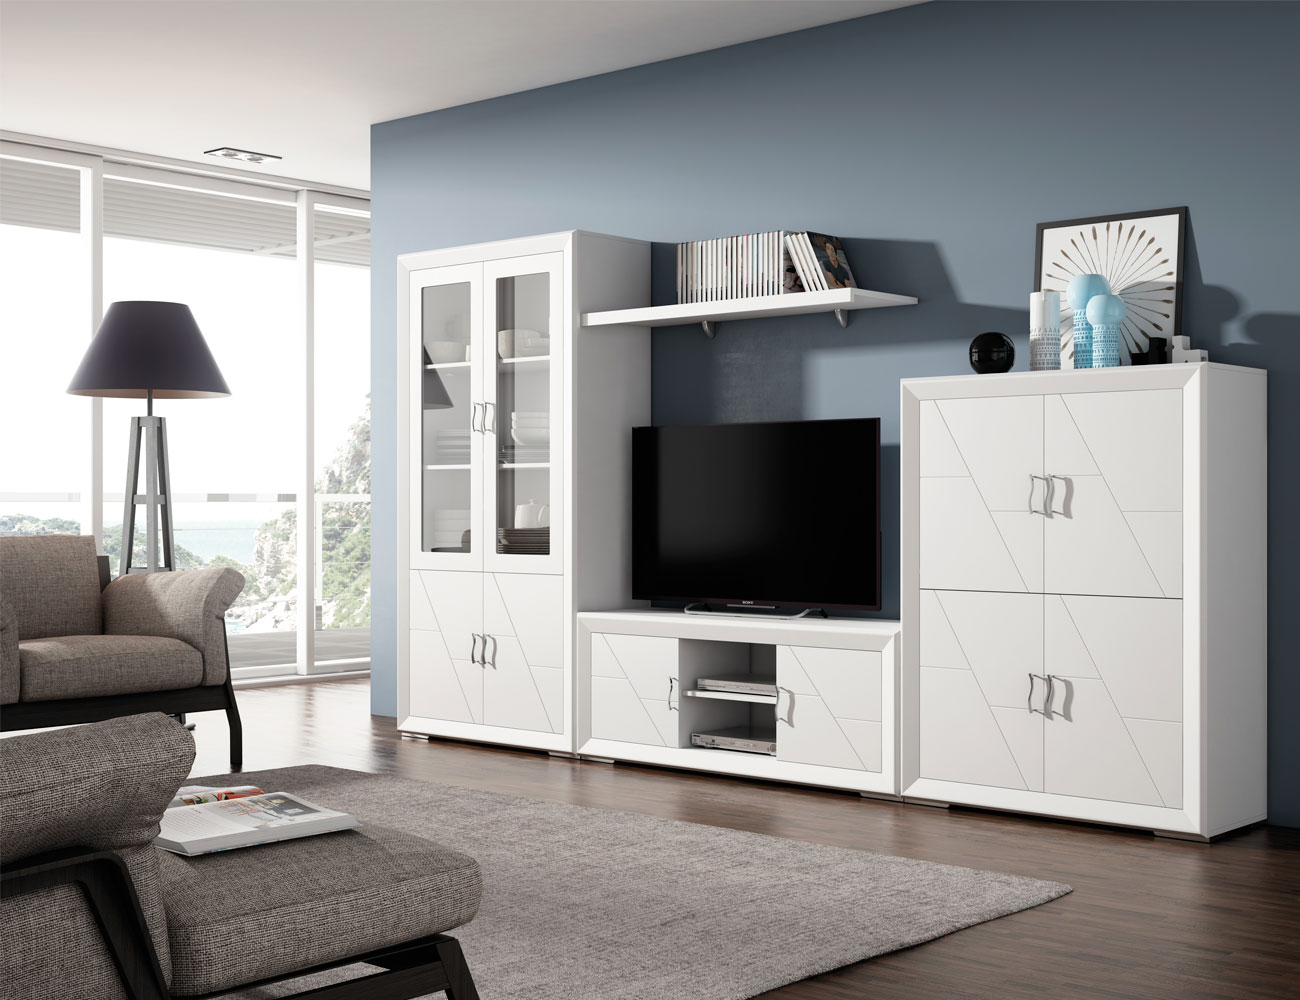 Pintar muebles de salon beautiful mueble salon ceniza for Mueble apilable salon